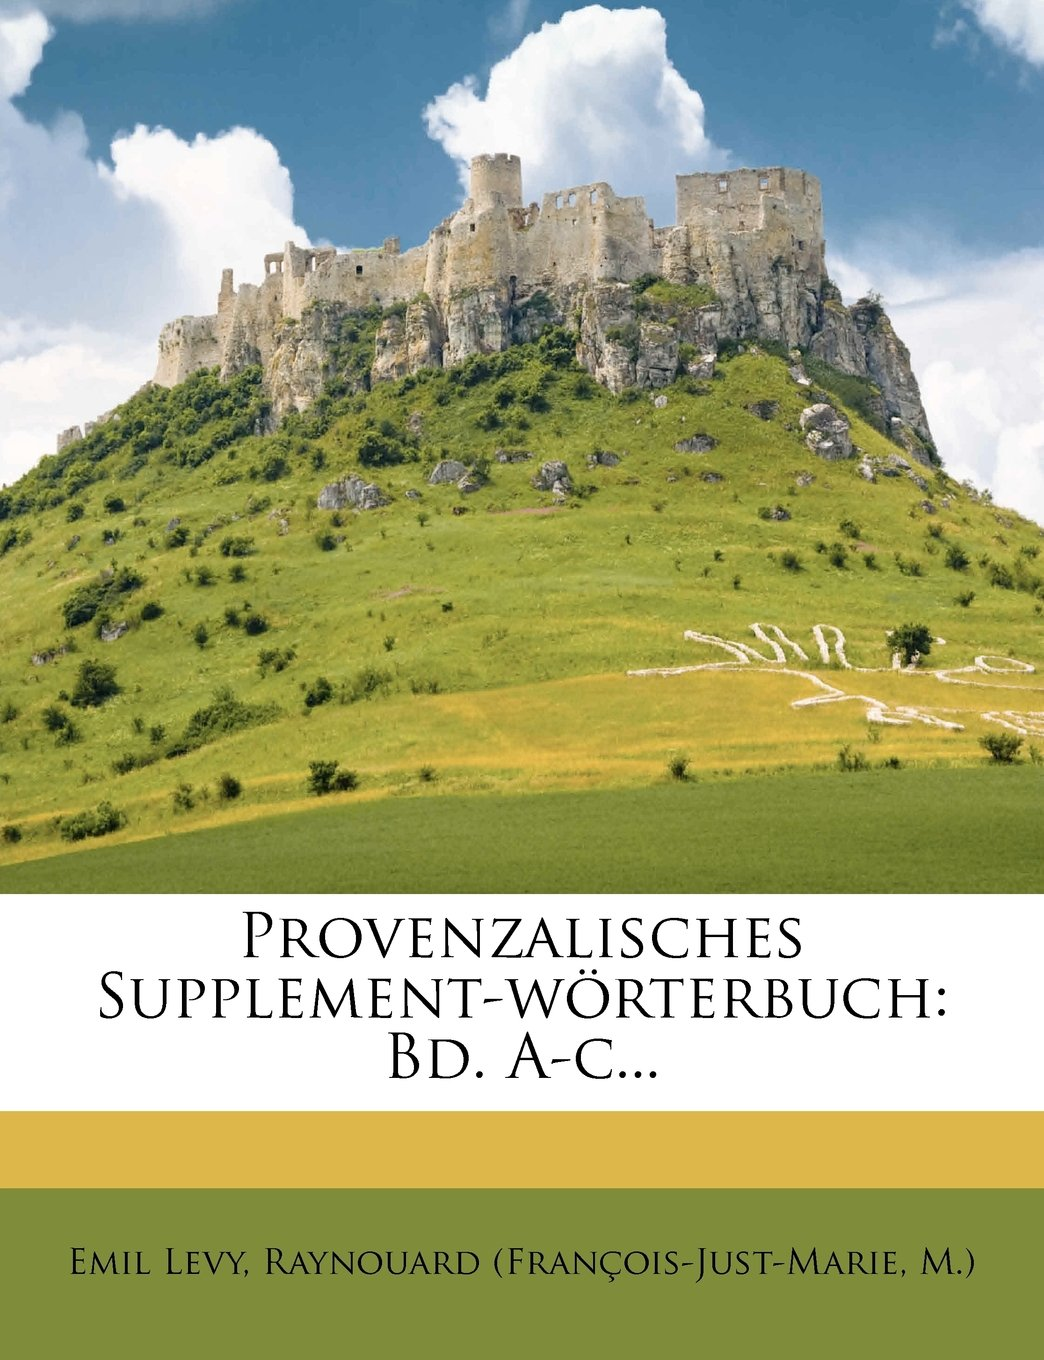 Download Provenzalisches Supplement-Worterbuch: Bd. A-C... (German Edition) ebook